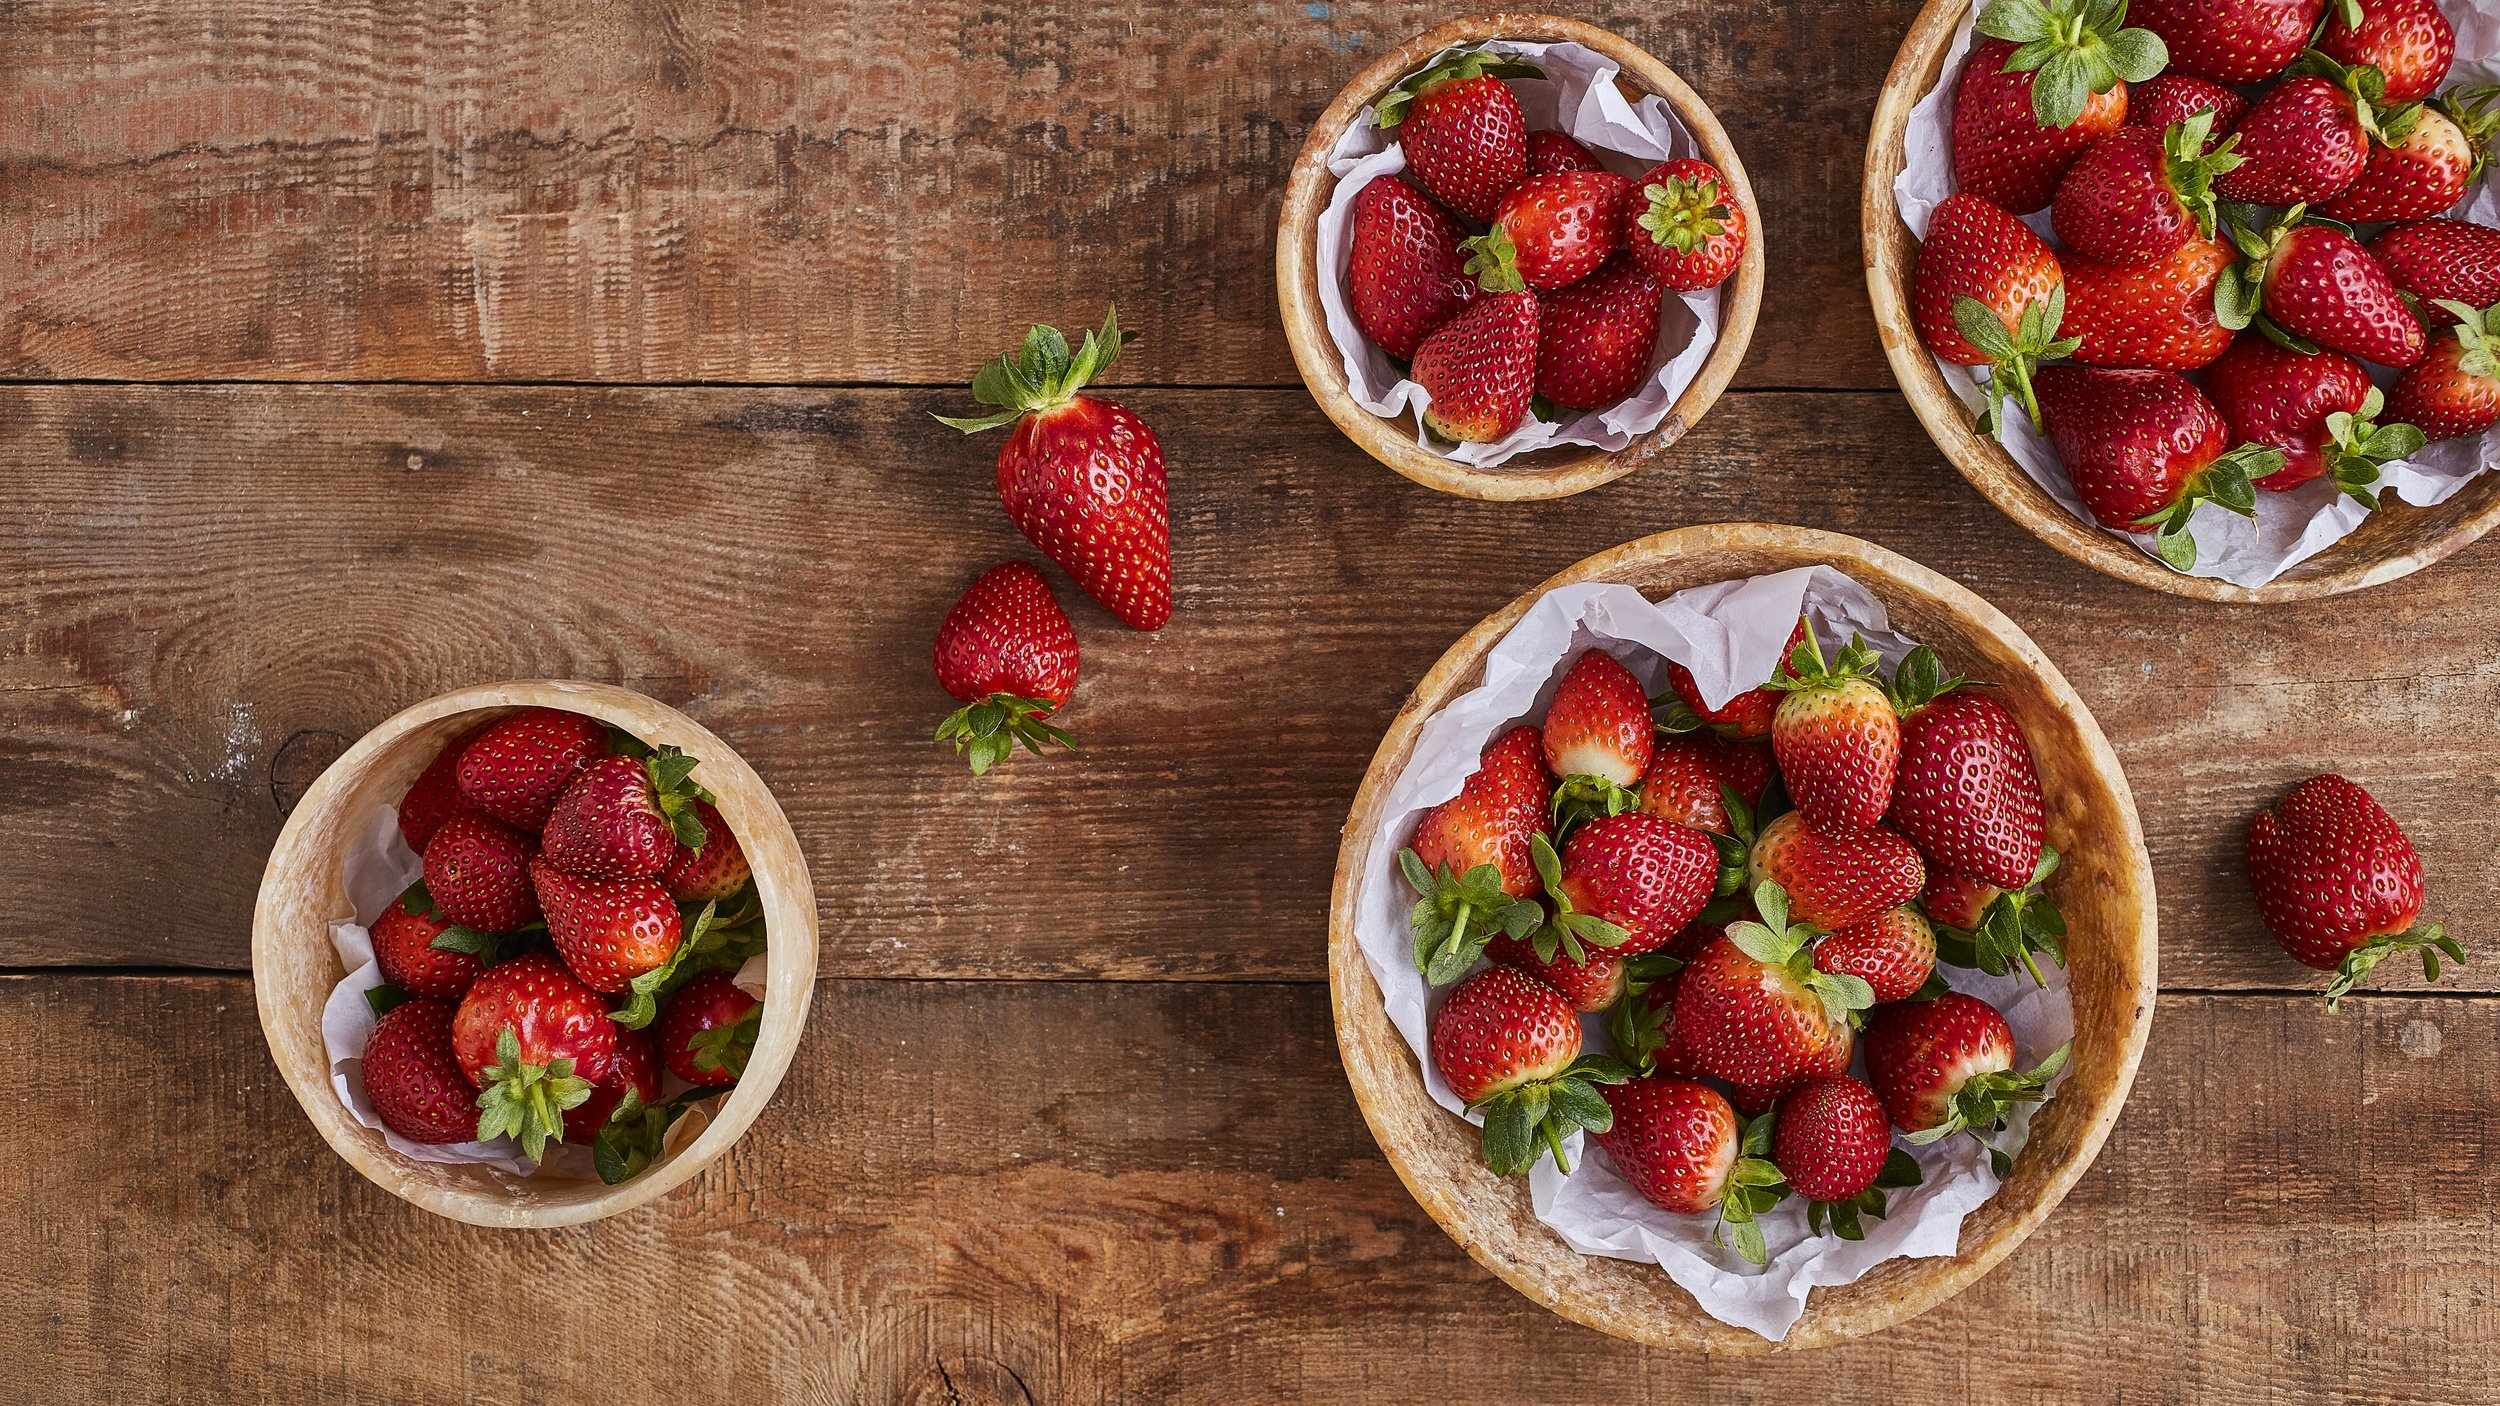 For the freshest strawberries, always buy them in season.